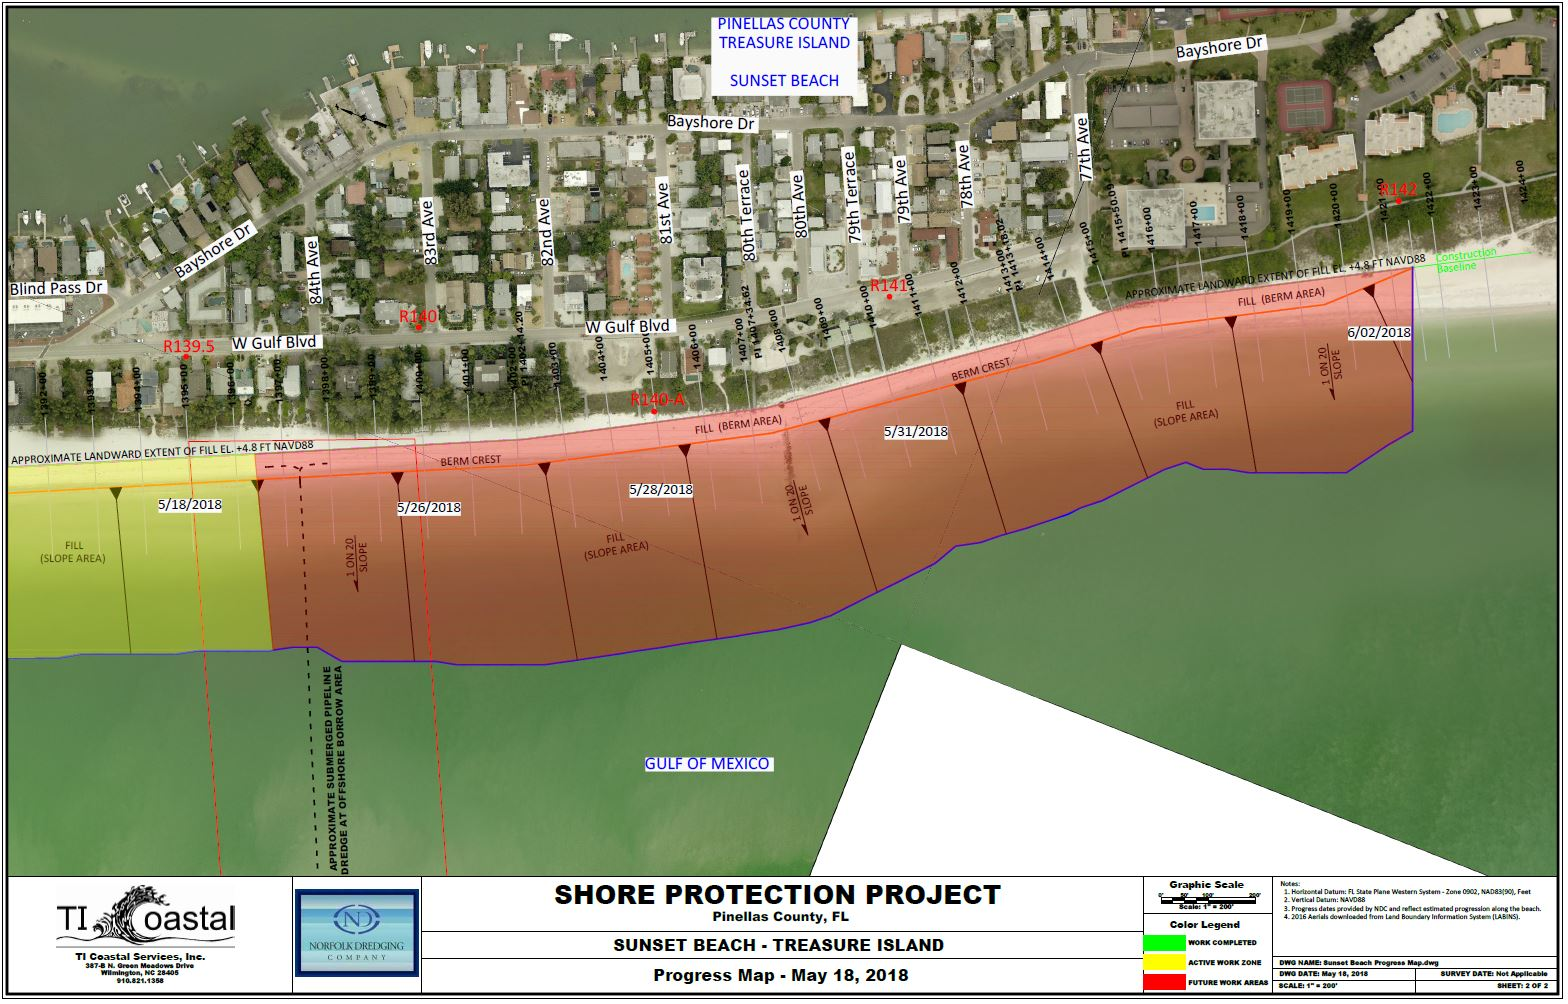 Pinellas County Shore Protection Progress Map two May 18 2018